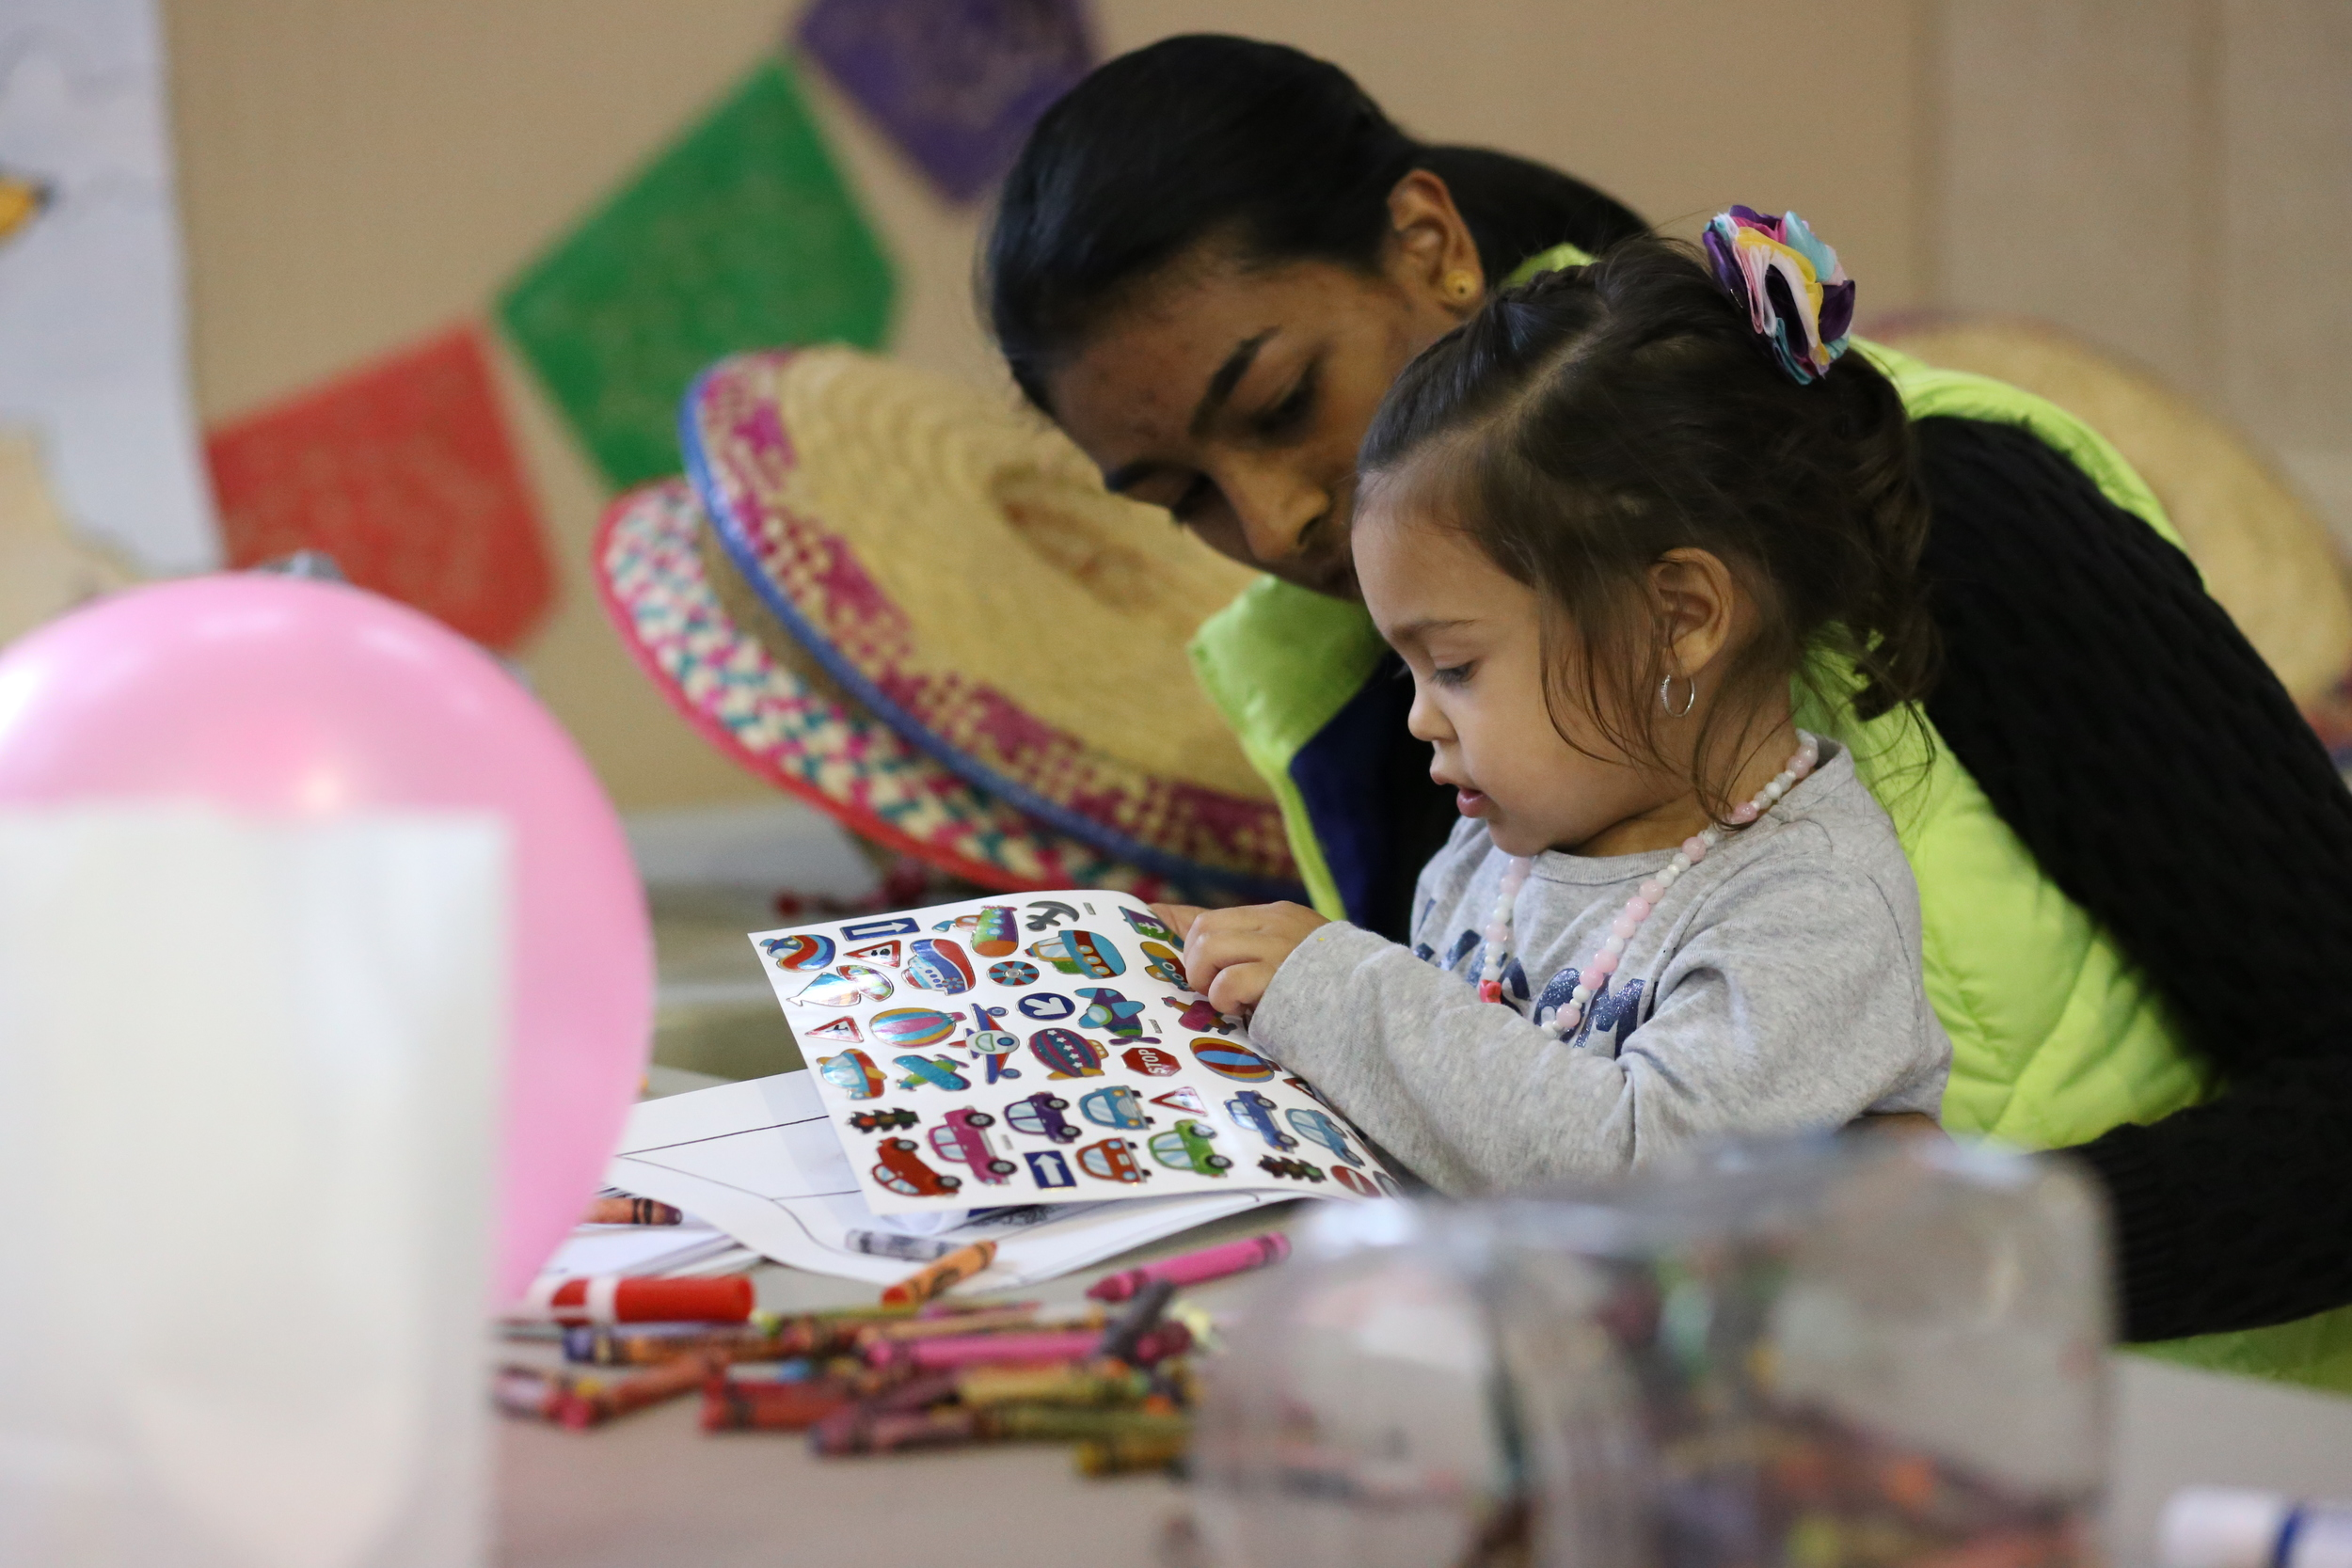 Two-year-old Alyson Sanchez picks out a sticker with help from 15-year-old Signature School student Maansi Asthana at a craft station during Global Crossroads in New Harmony November of 2015. Global Crossroads was a daylong culture and musical festival filled with Latin food, music and art as well as a performance by the first in New York all women's mariachi band, Mariachi Flor de Toloache. (Shot for The Shield)